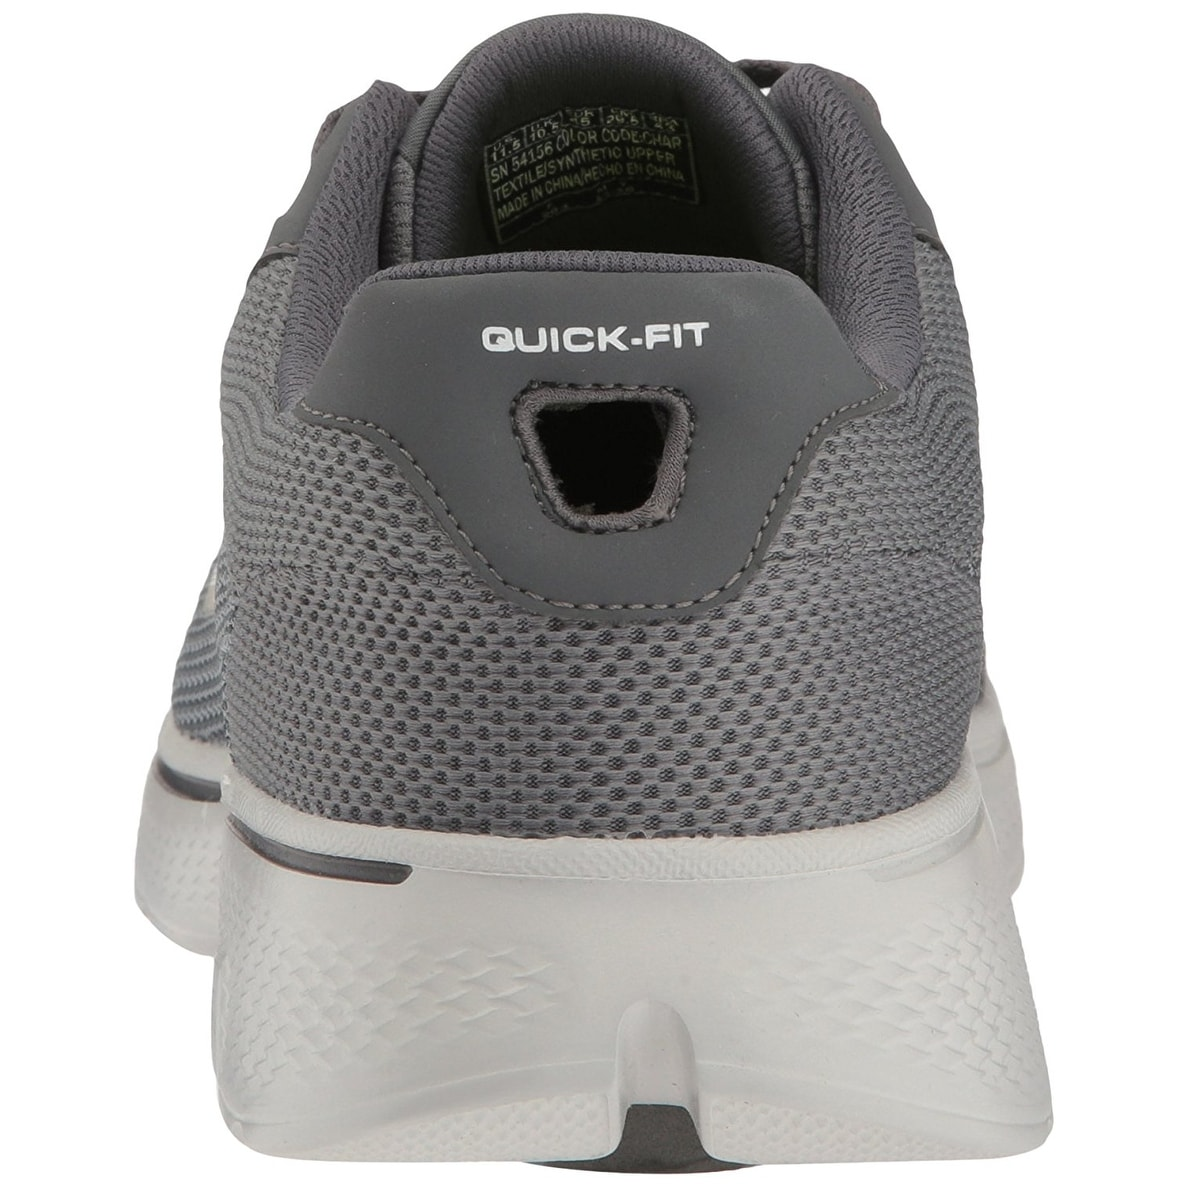 check out 50d86 1c311 Shop Skechers Performance Men s Go Walk 4 Noble Walking Shoe, Charcoal Mesh  - Free Shipping Today - Overstock - 18279928